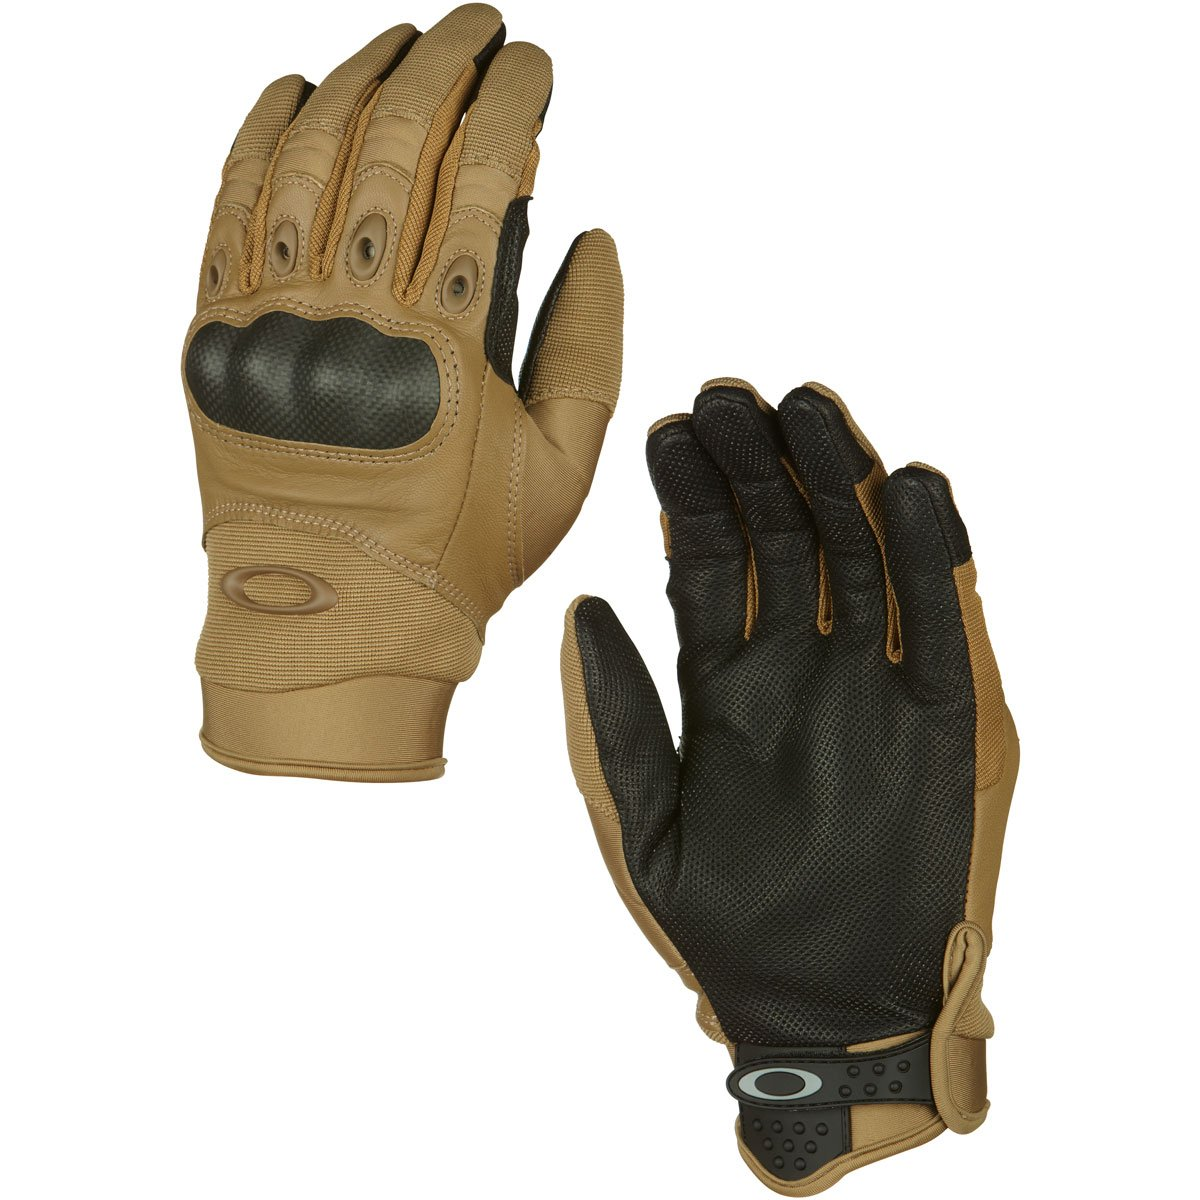 Oakley Mens Factory Pilot Glove, Coyote, X-Small